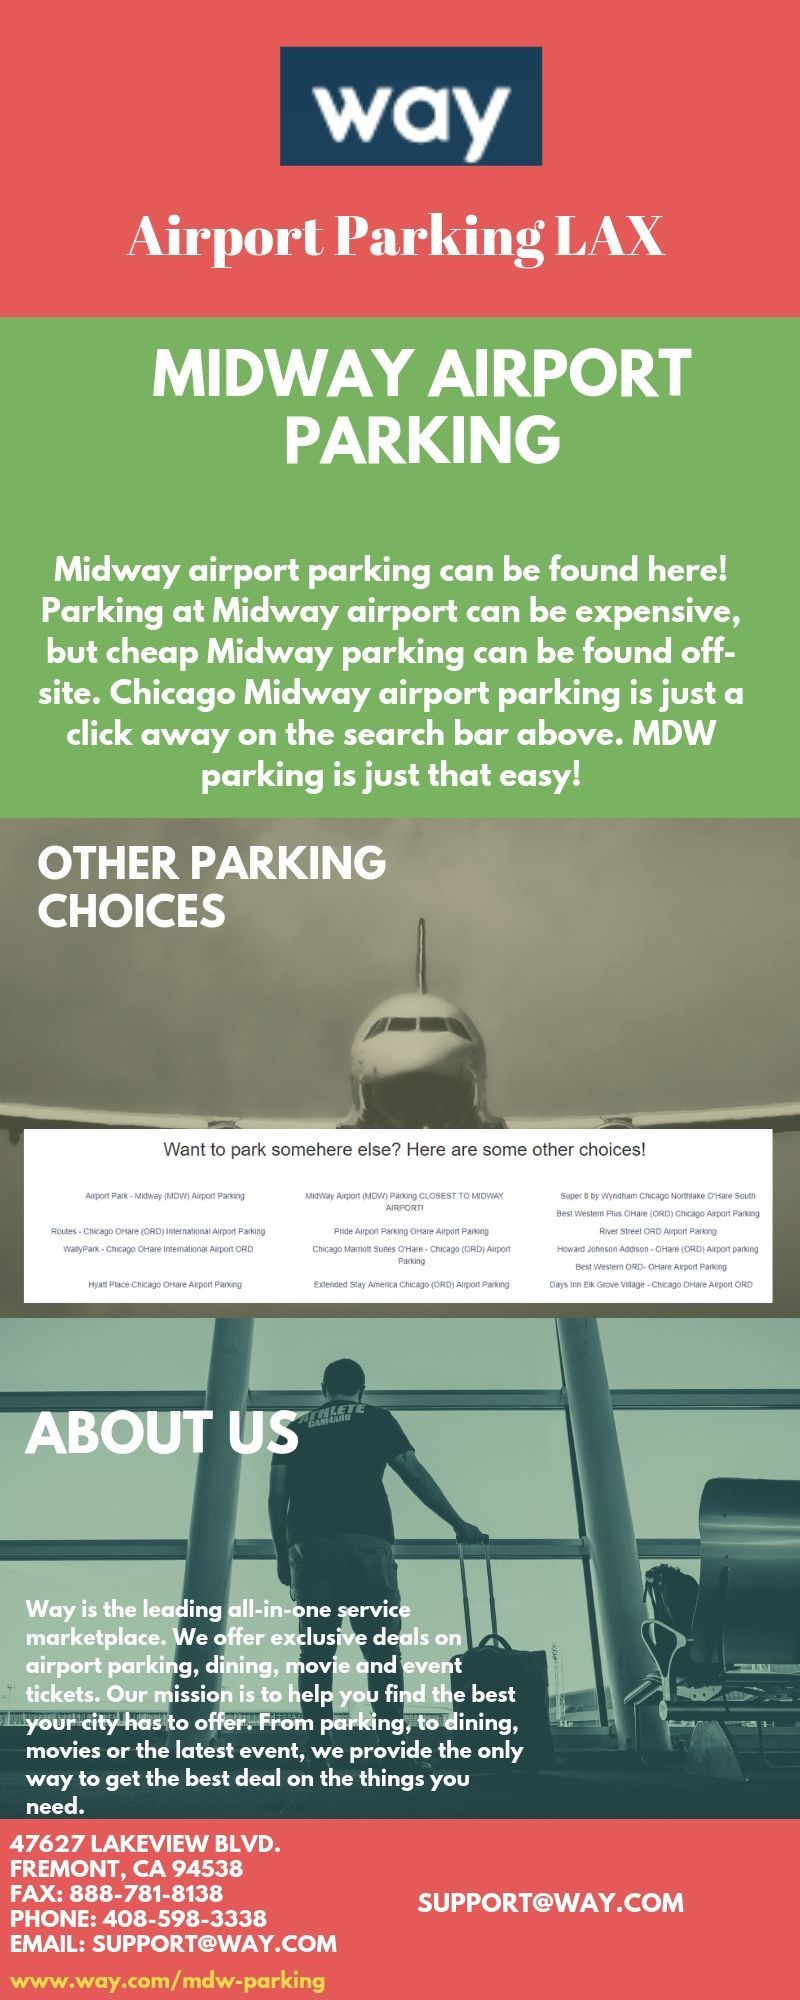 At way midway airport parking provides a highly secure